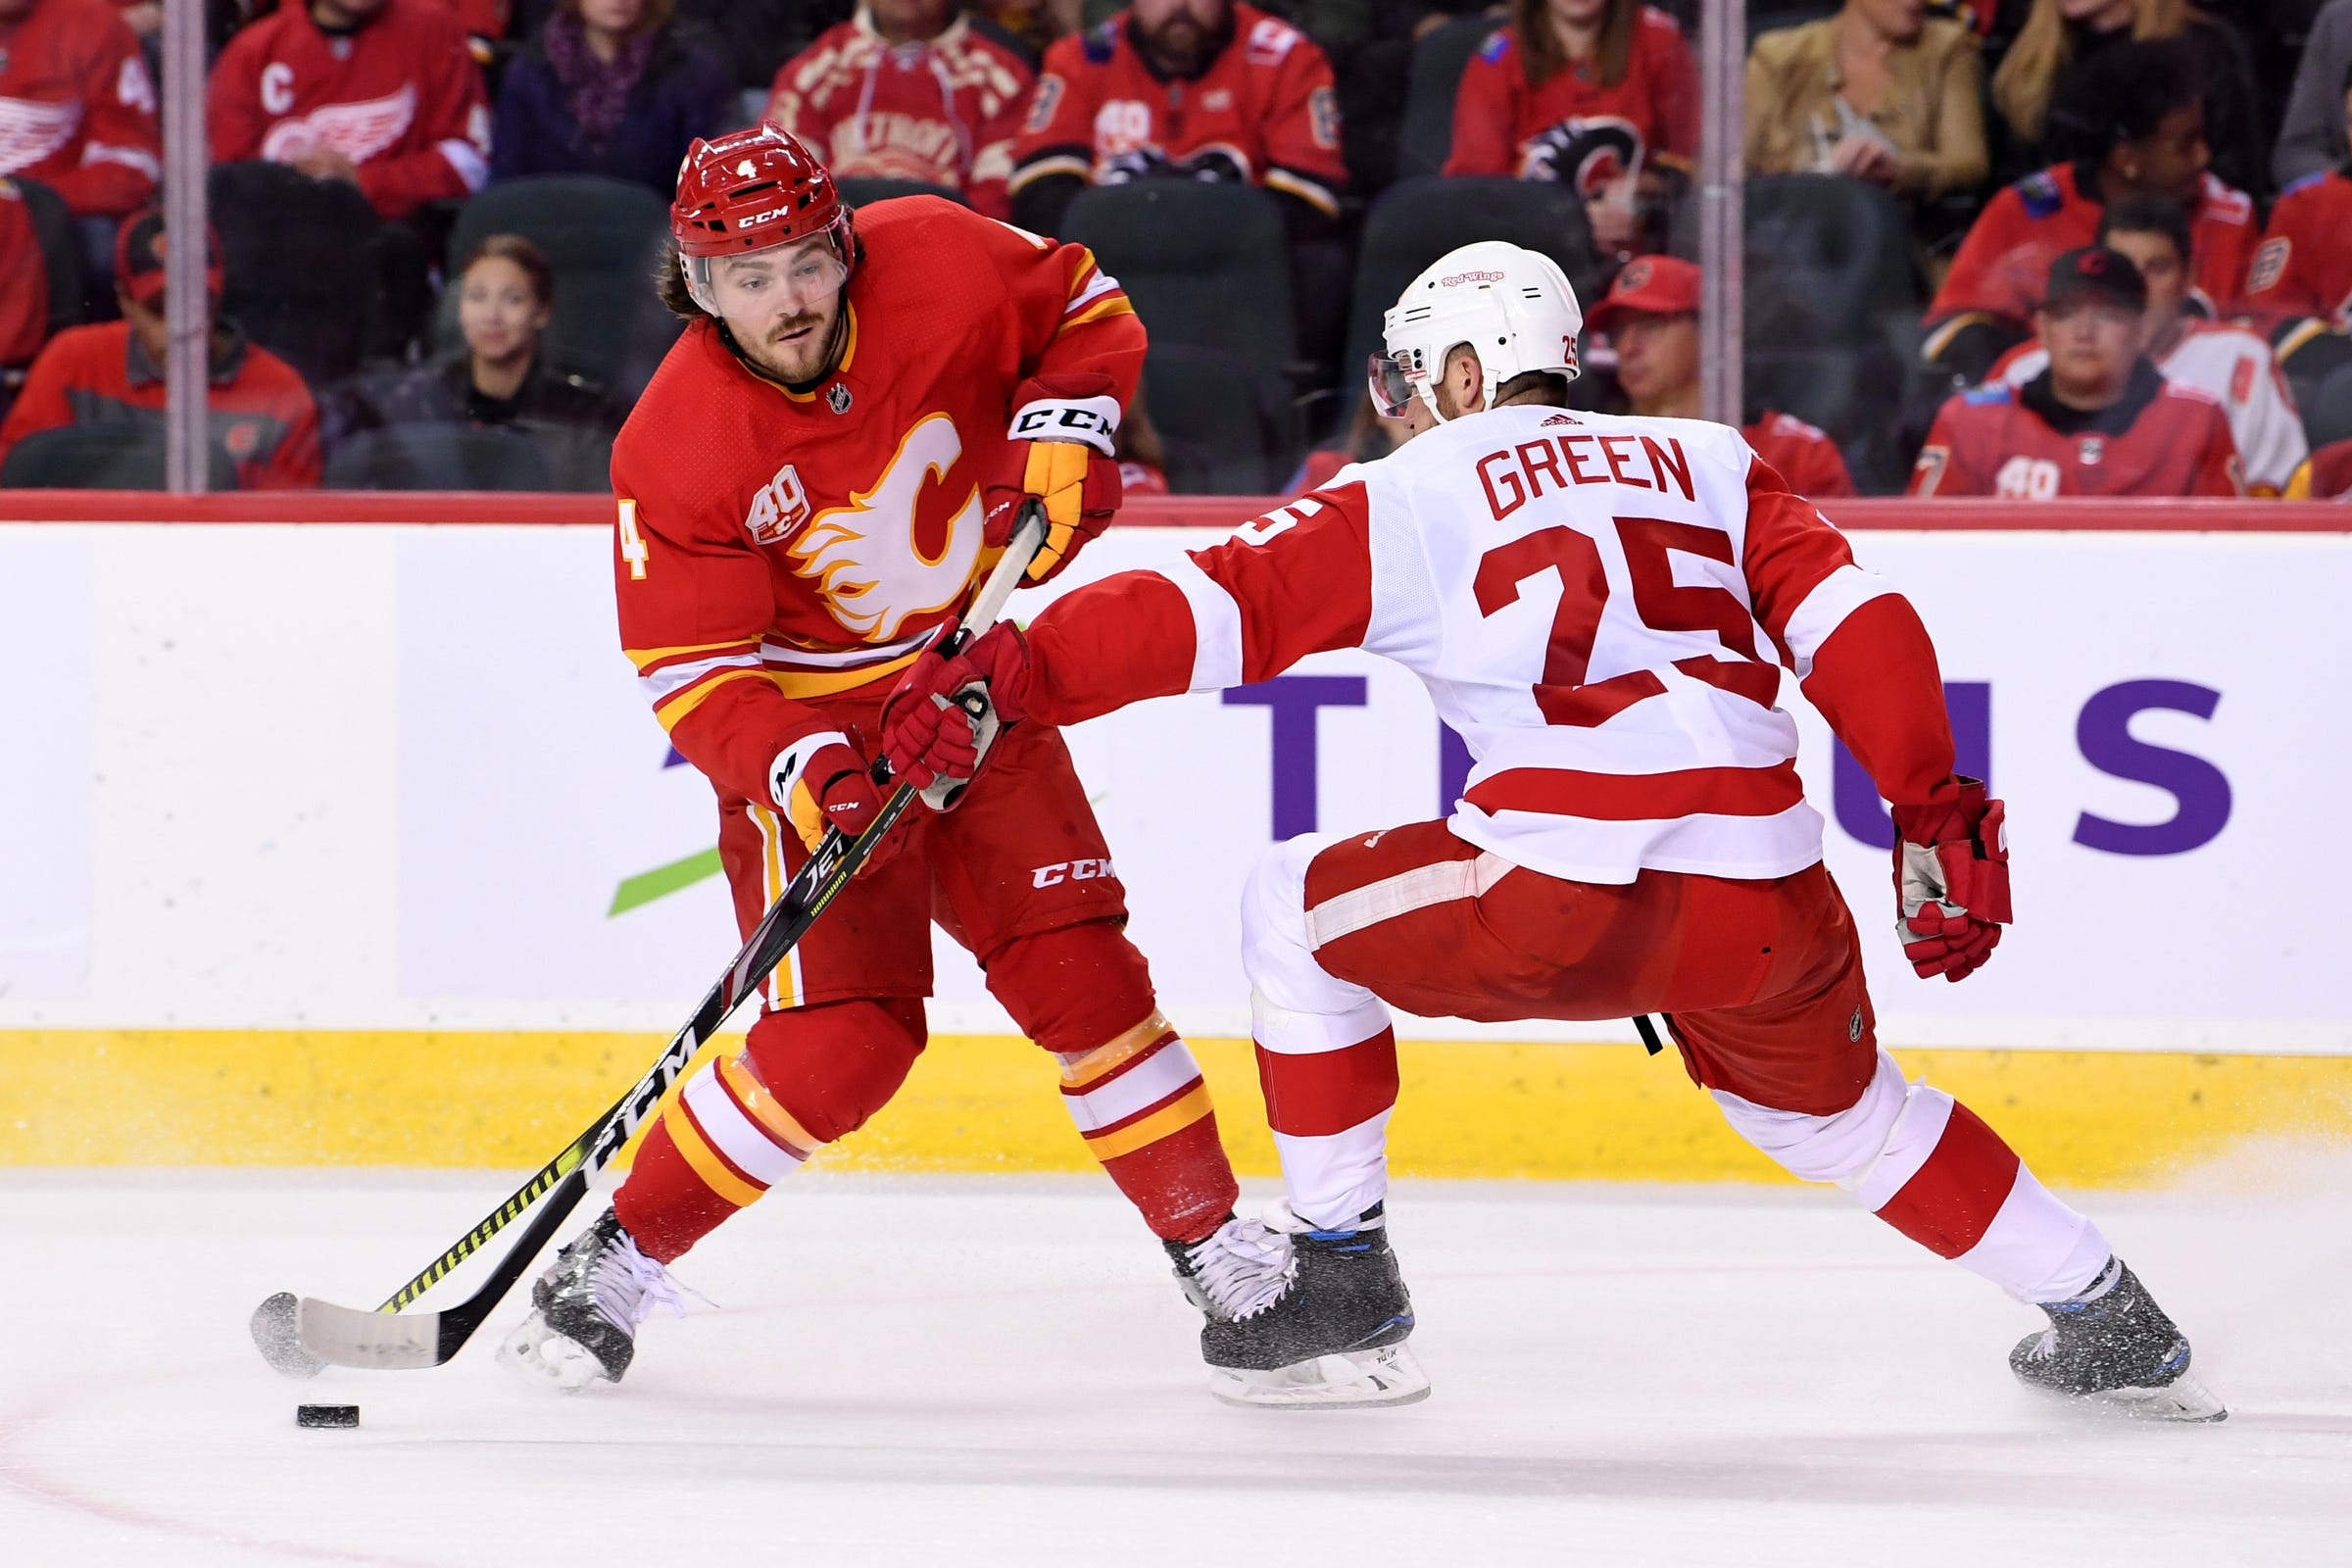 Detroit Red Wings' special teams to blame in loss at Calgary: 'Guys have to step up'